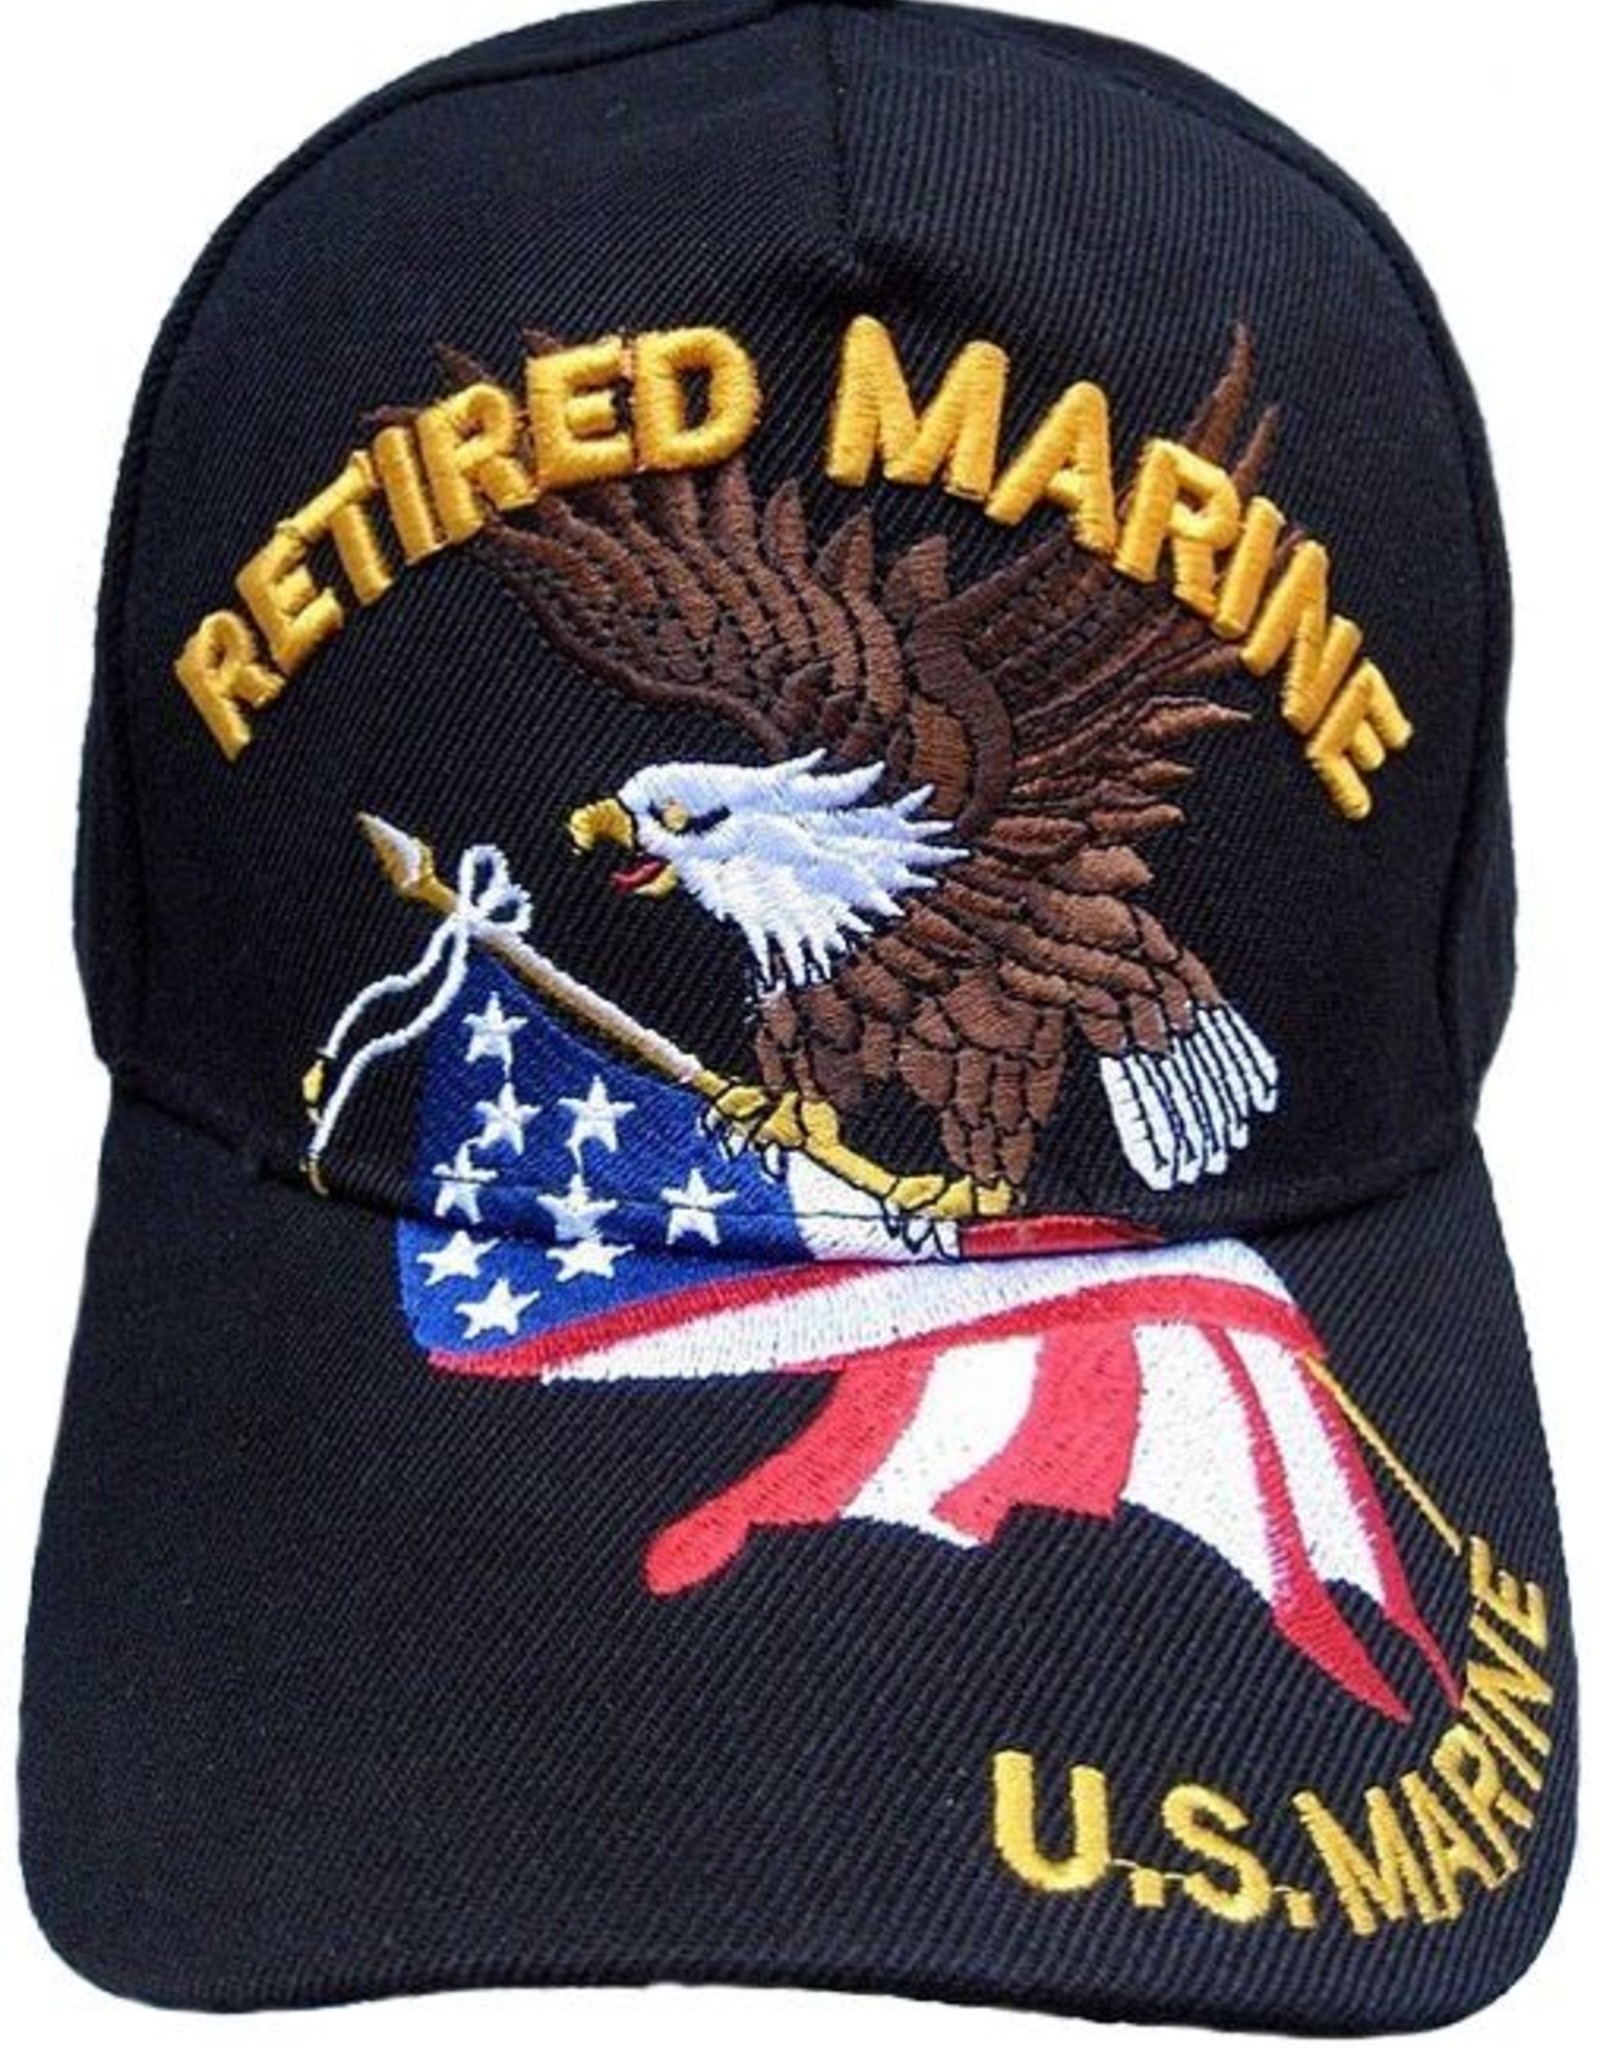 MidMil Retired Marine Hat with Eagle and American Flag Black